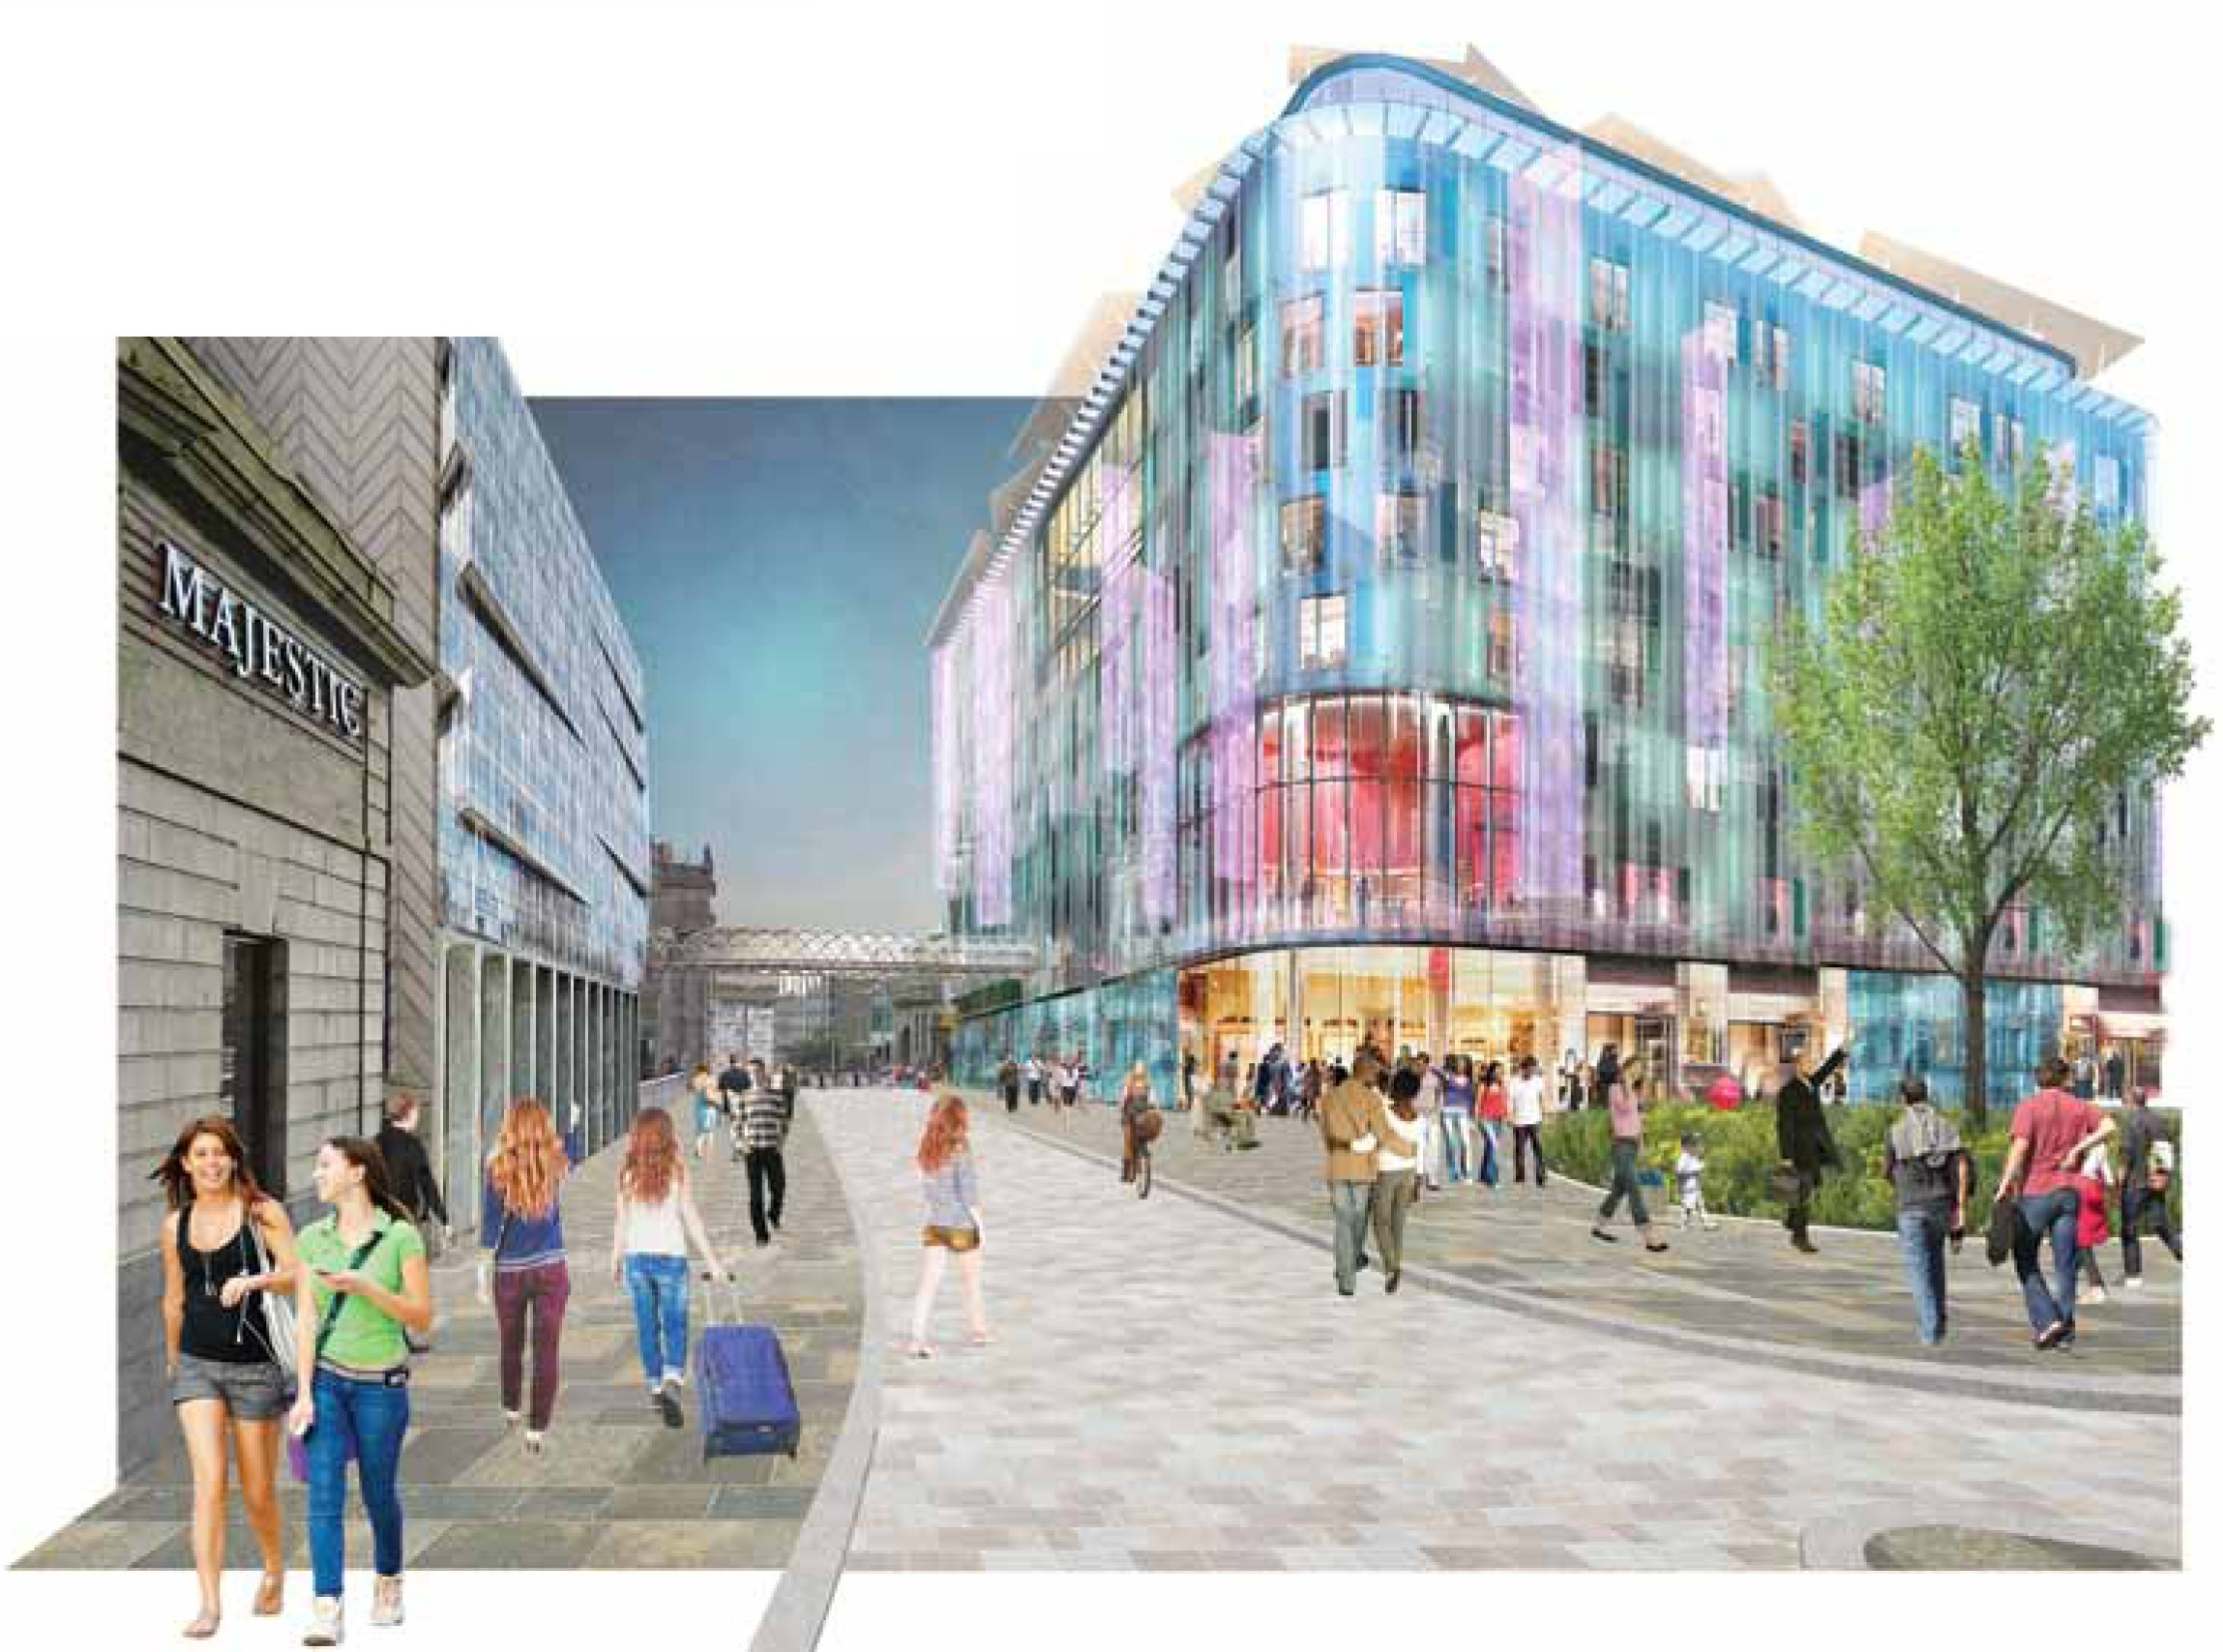 Some colour would be added as the Guild Street area near the train station is regenerated.